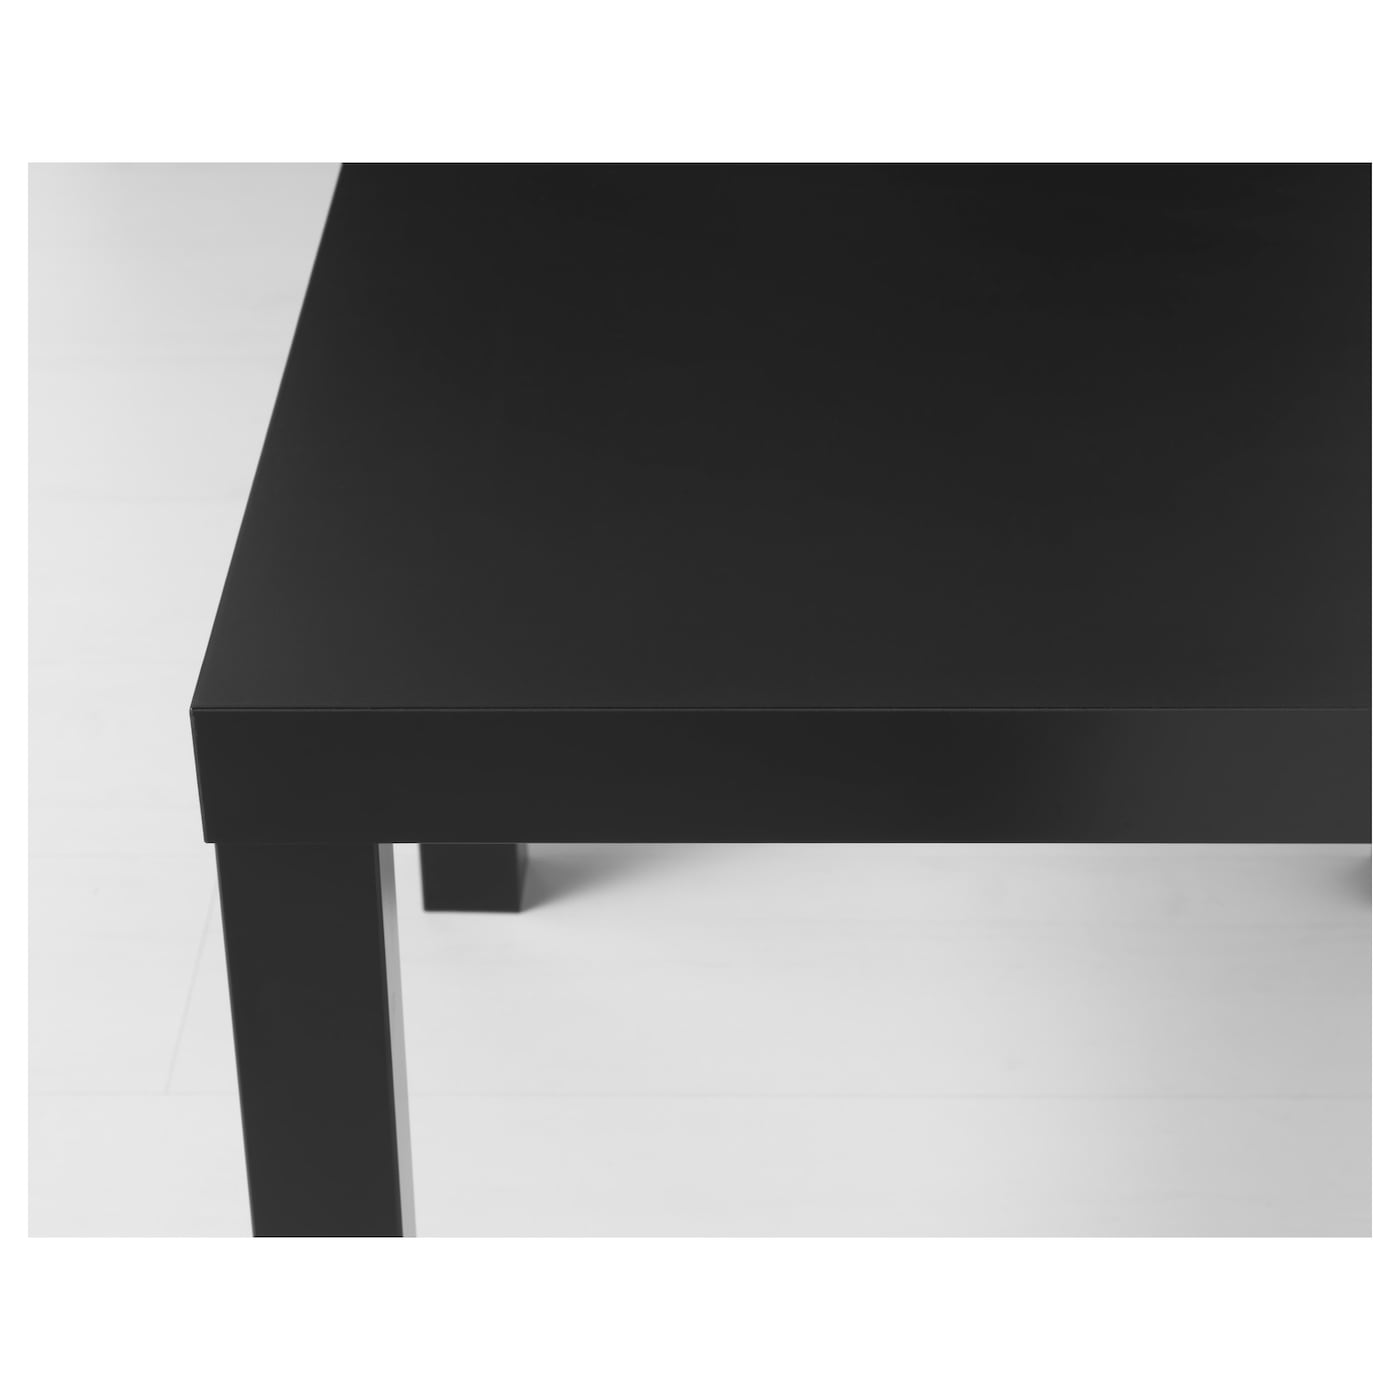 Lack side table black 55x55 cm ikea for Table lack ikea